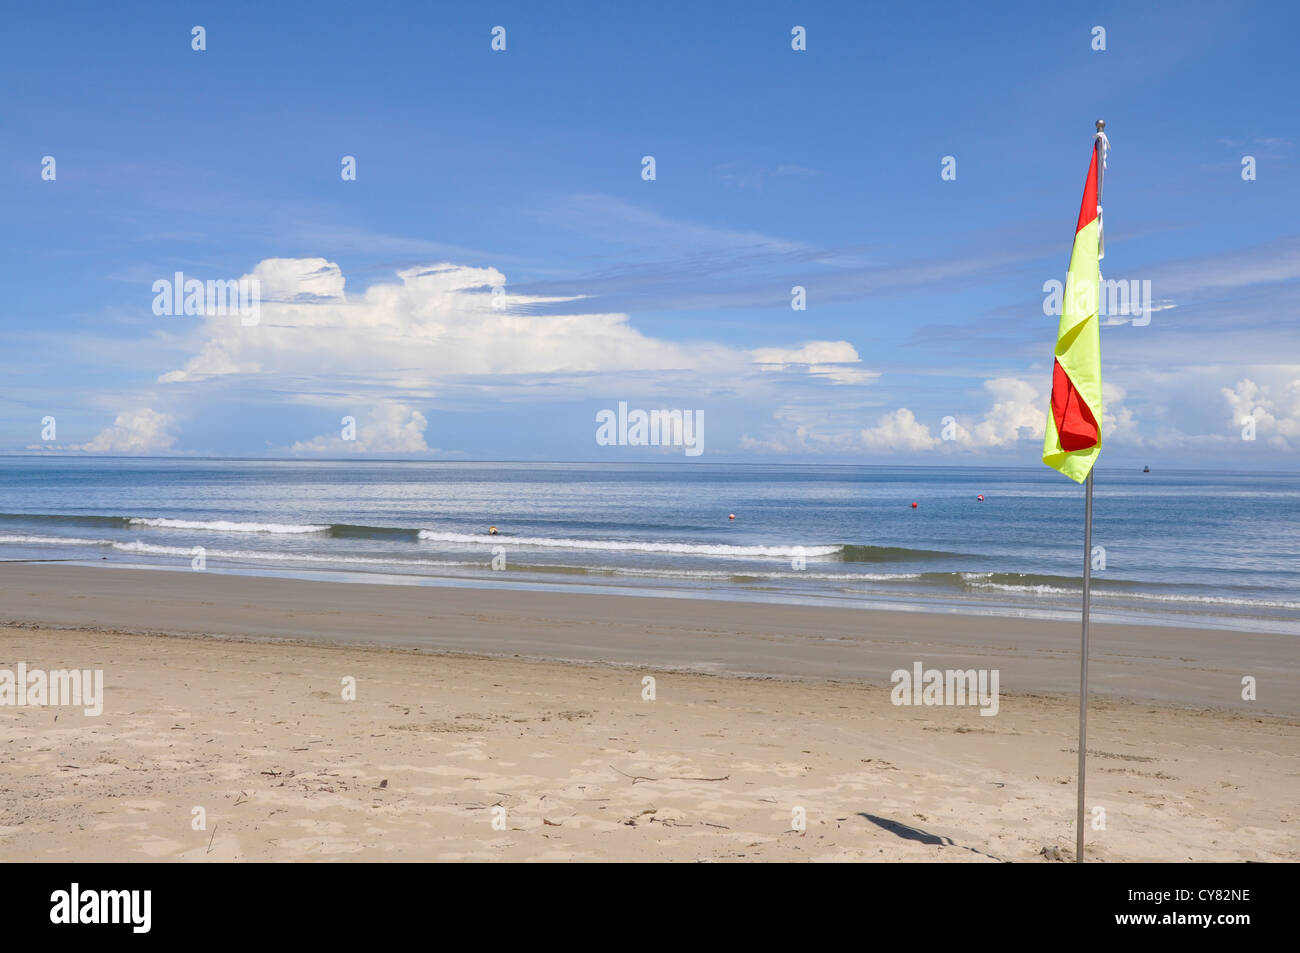 Red and Yellow flag on beach in Sabah, Borneo, Malaysia - Stock Image